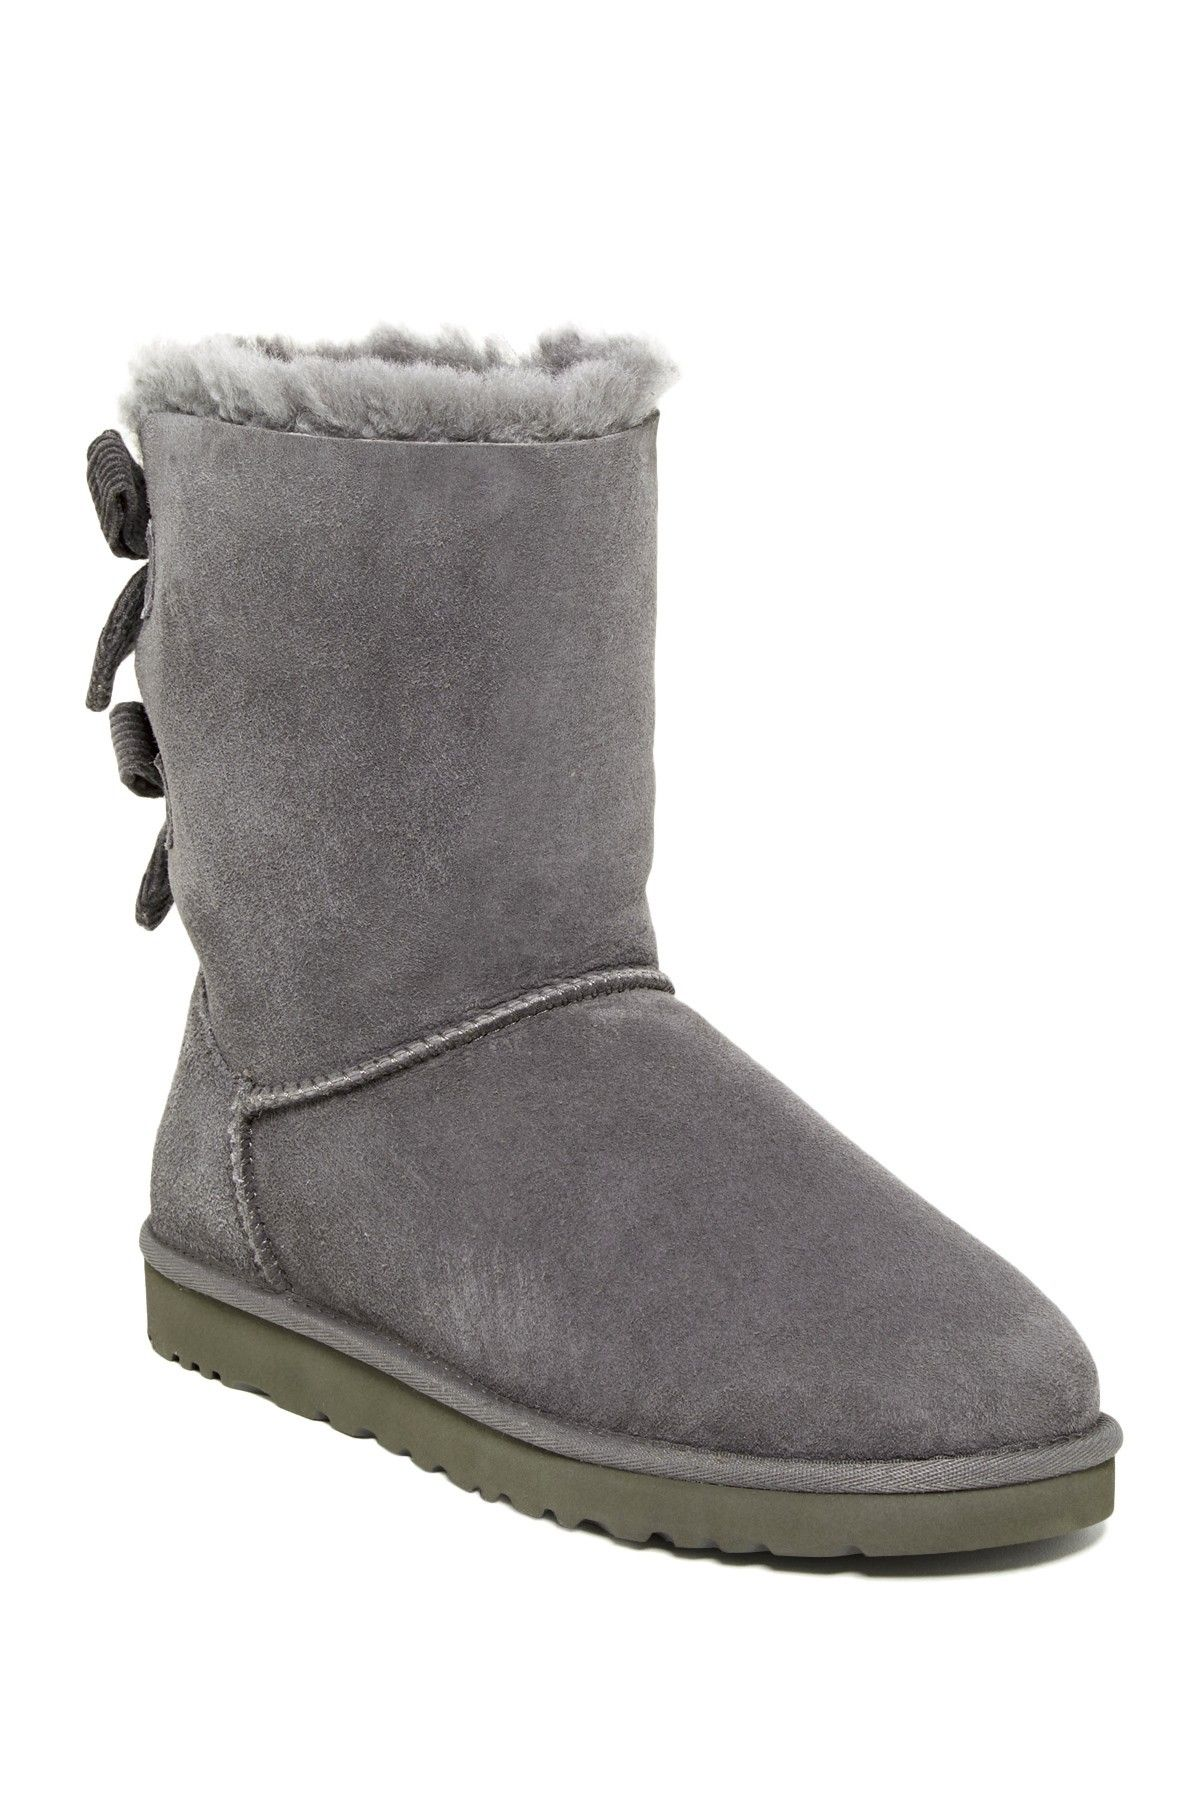 5fab15a0c41 UGG Bailey Twinface Genuine Shearling & UGGpure(TM) Bow Corduroy ...